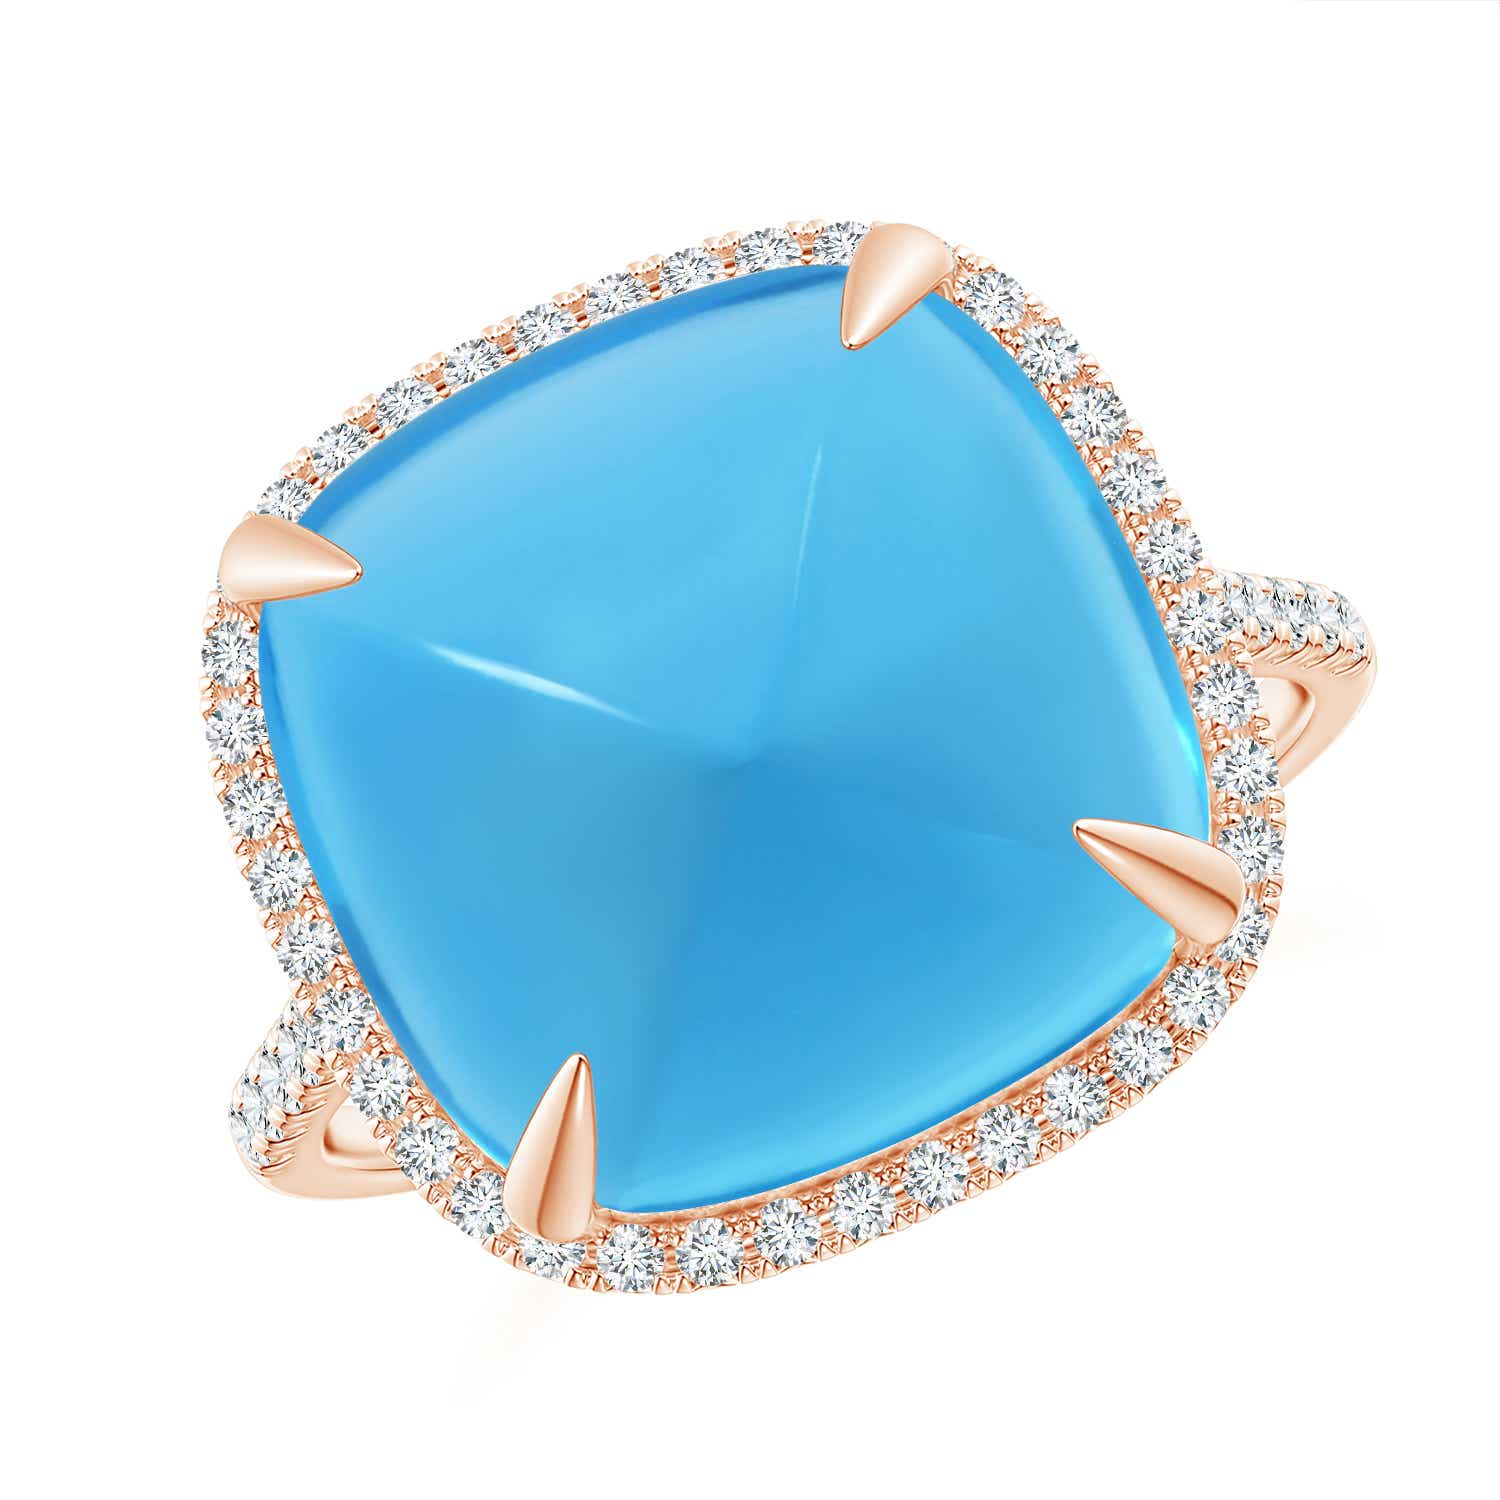 Sugarloaf Cabochon Swiss Blue Topaz Ring with Diamond Halo - Angara.com